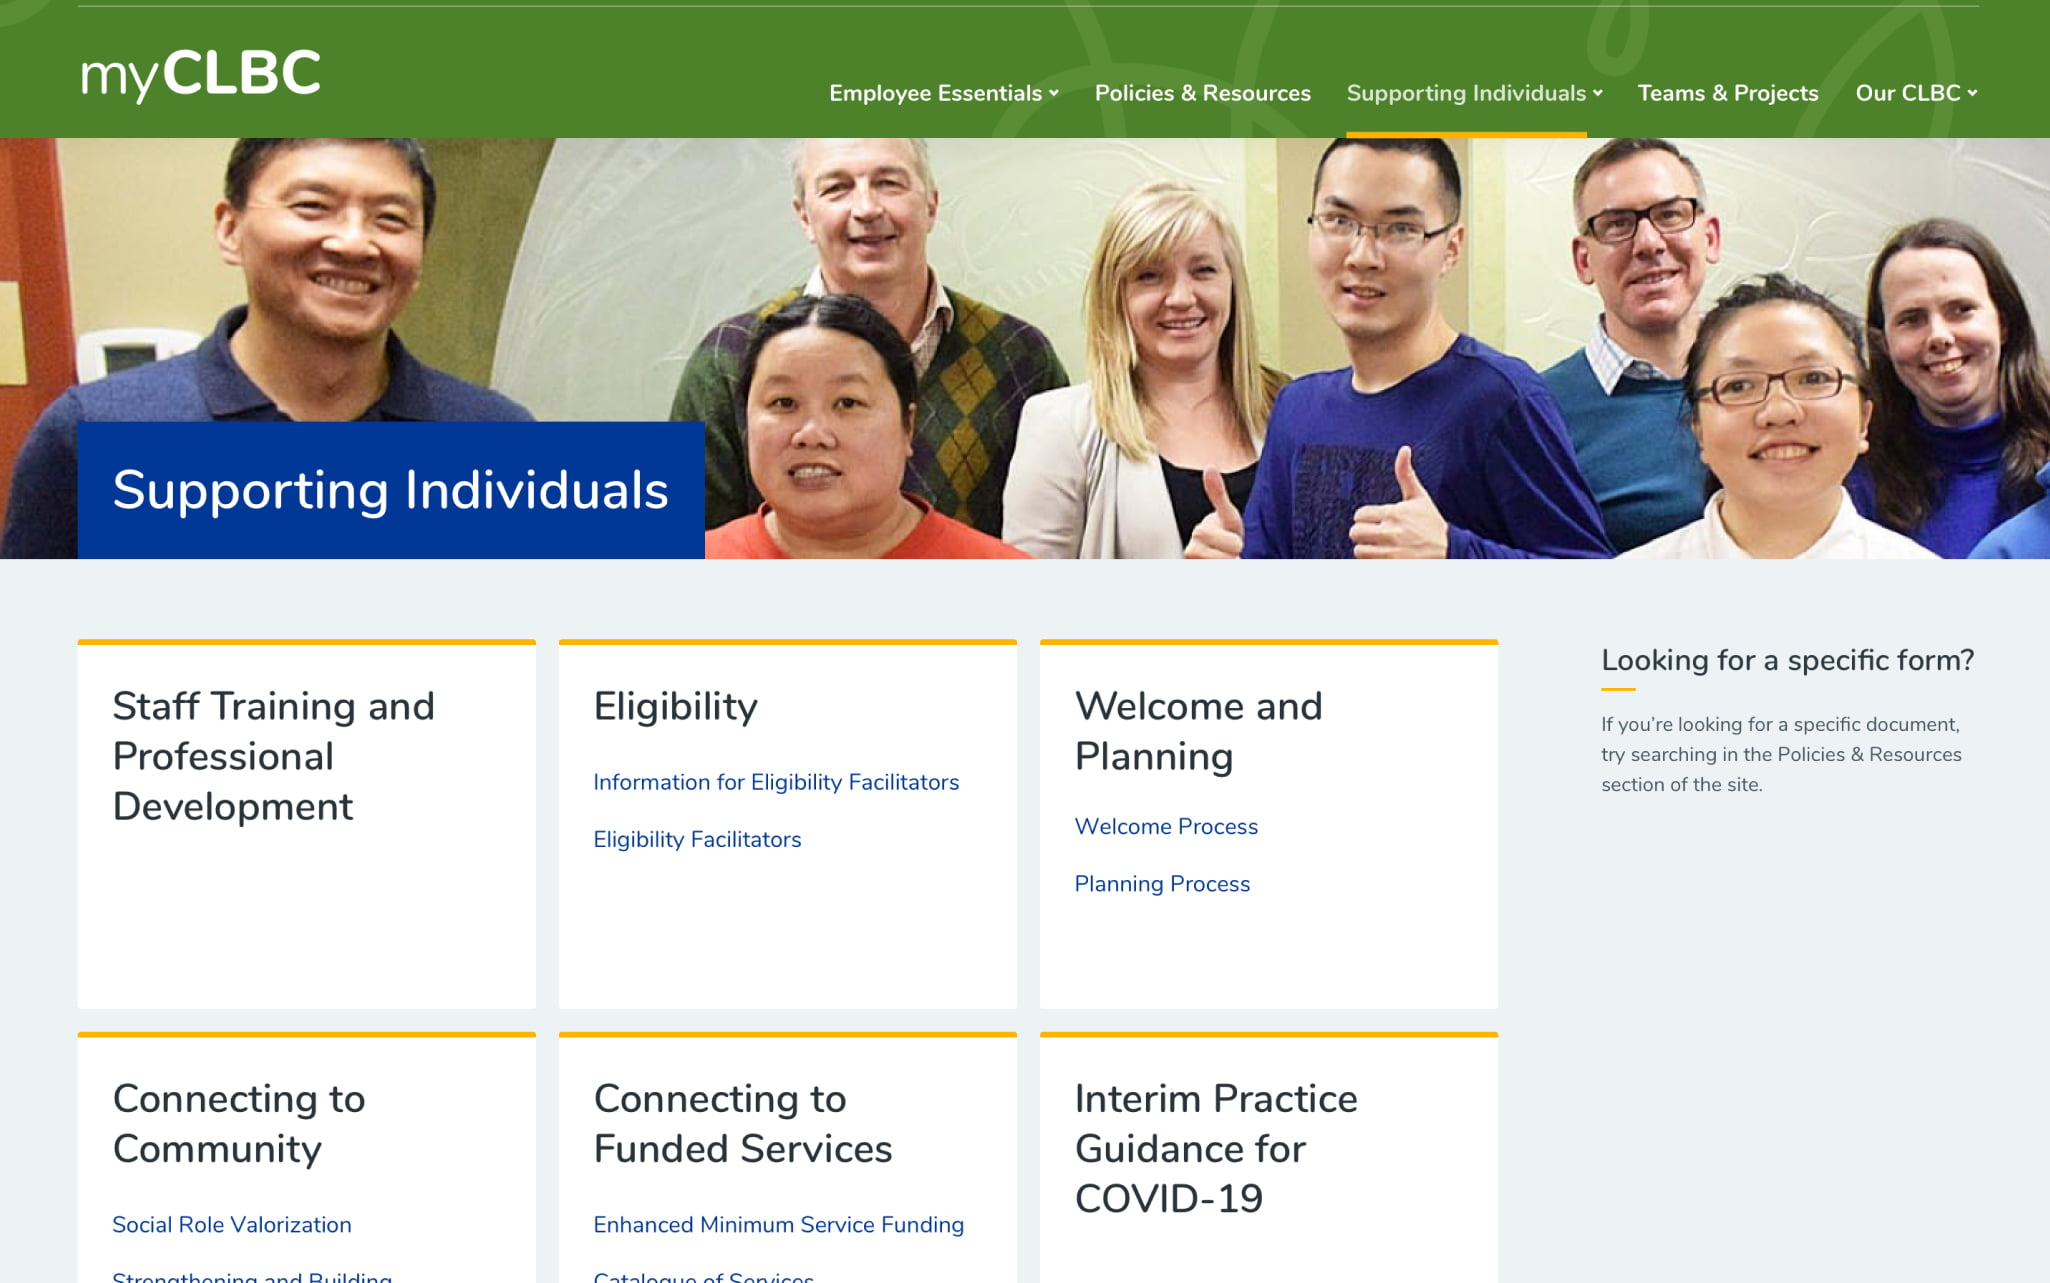 Desktop mock-up of the 'supporting individuals' page on CLBC's intranet.